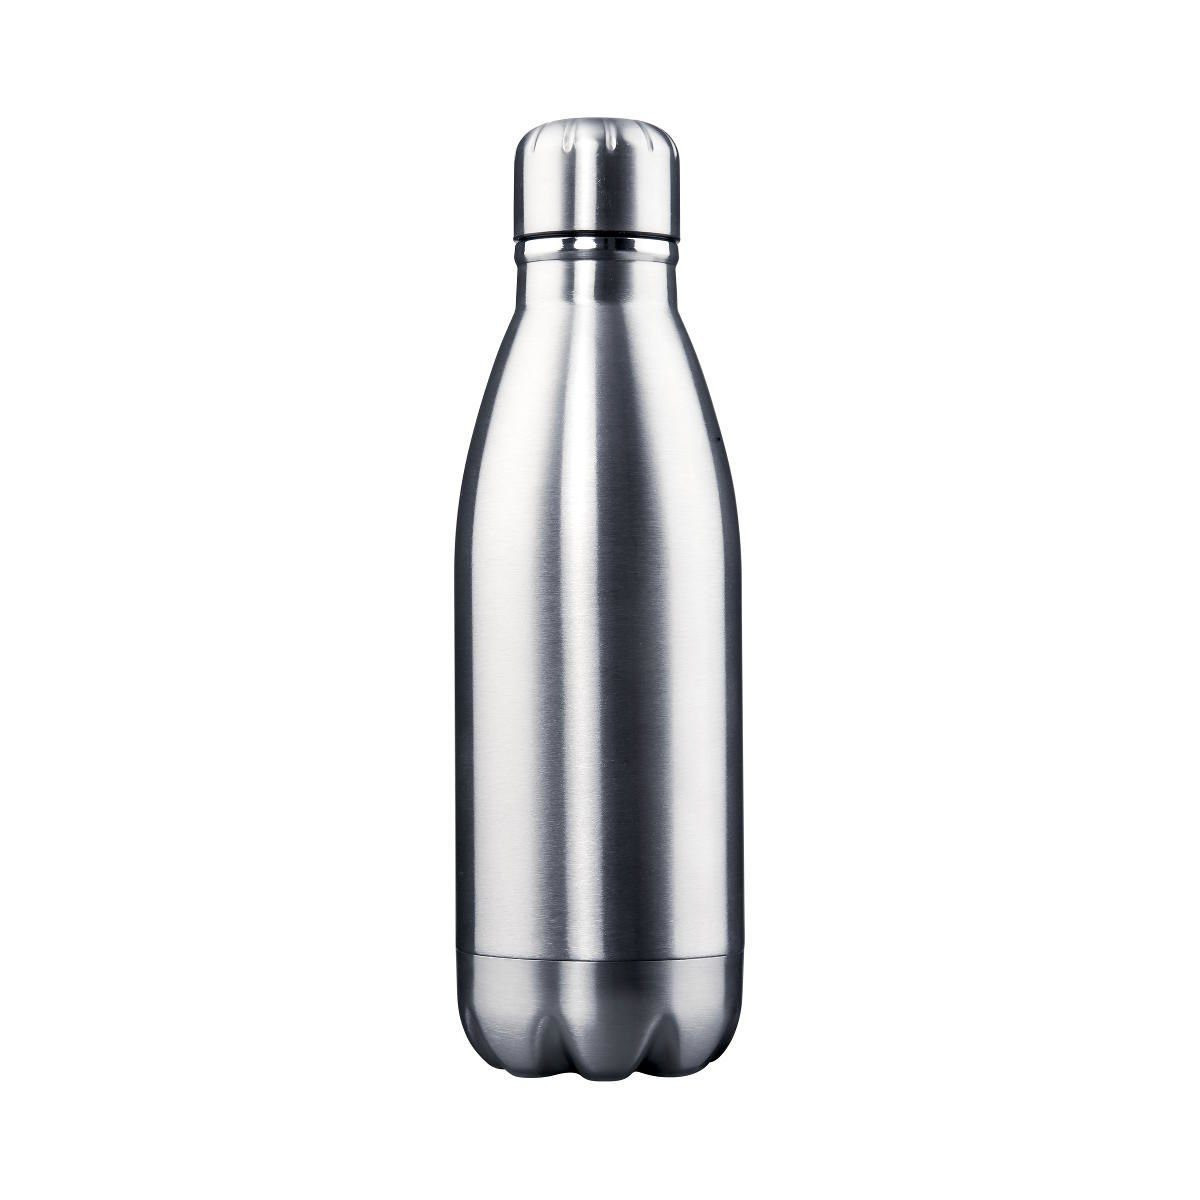 BUTLERS TO GO »Isolierflasche«